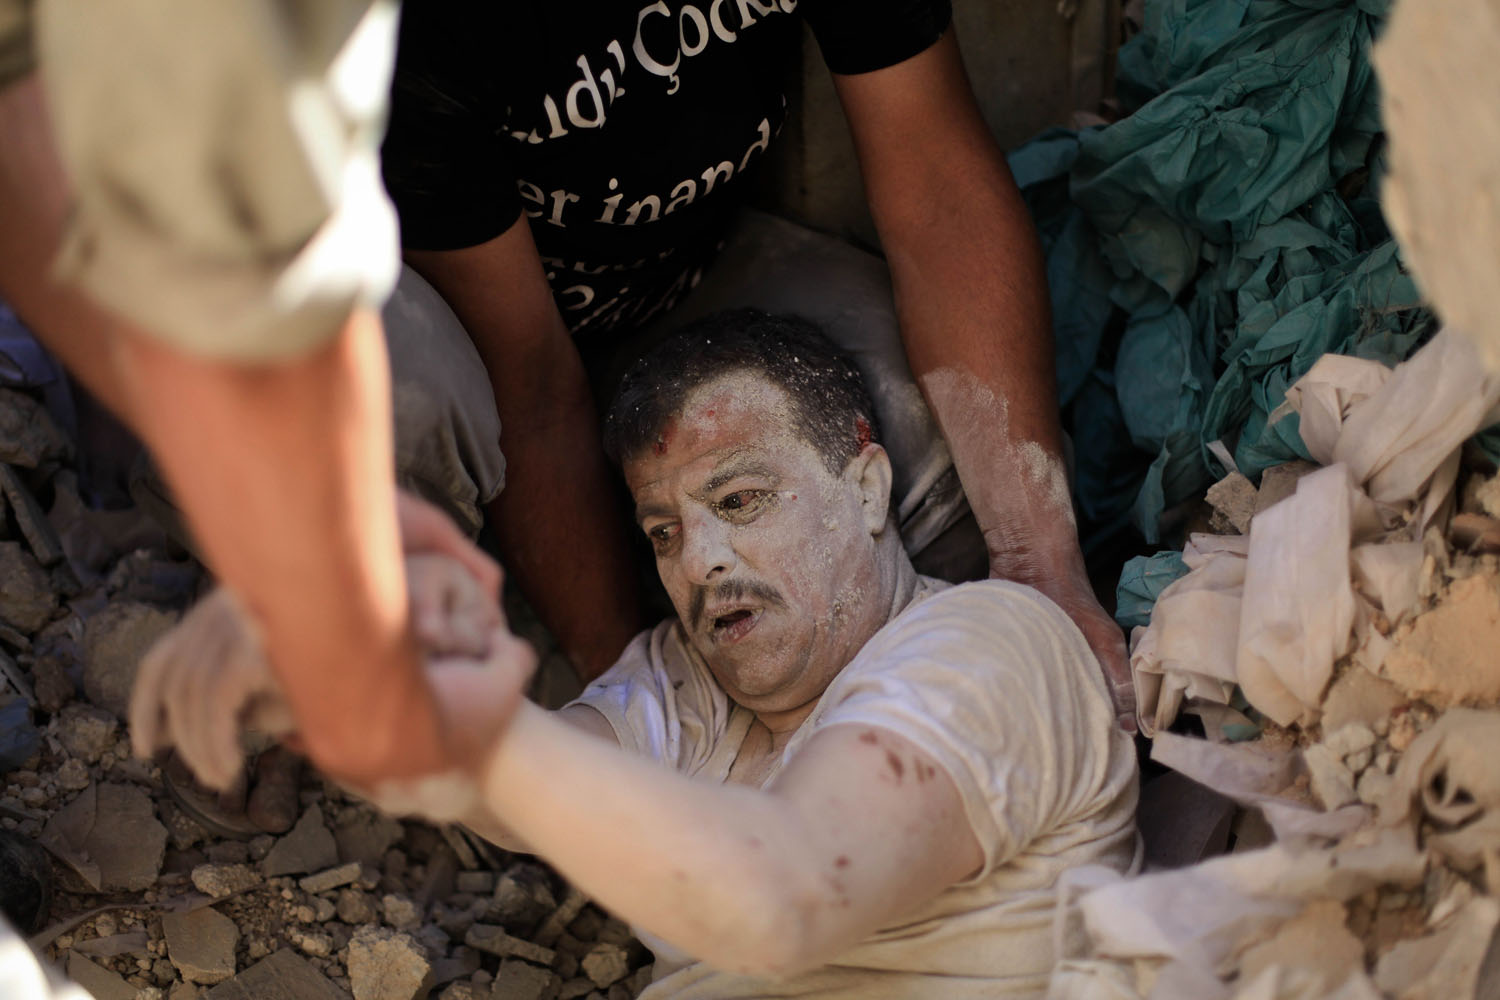 Jul. 7, 2014. Members of the Syrian Civil Defence rescue a man under the rubble following a reported barrel-bomb attack by Syrian government forces in the Qadi Askar neighbourhood in Aleppo.